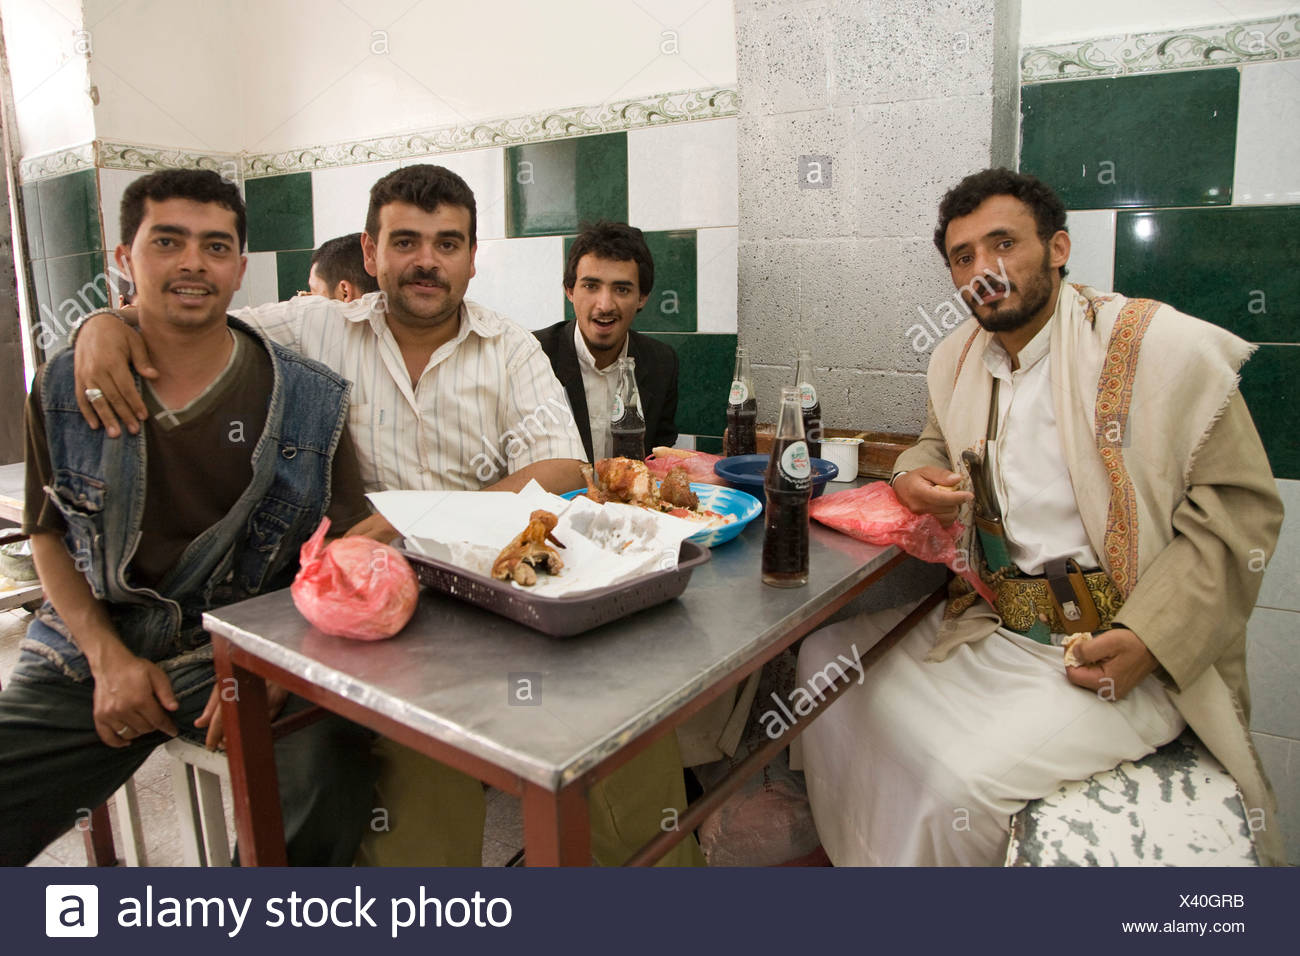 Men eating at a diner, San'a', Yemen, Middle East - Stock Image